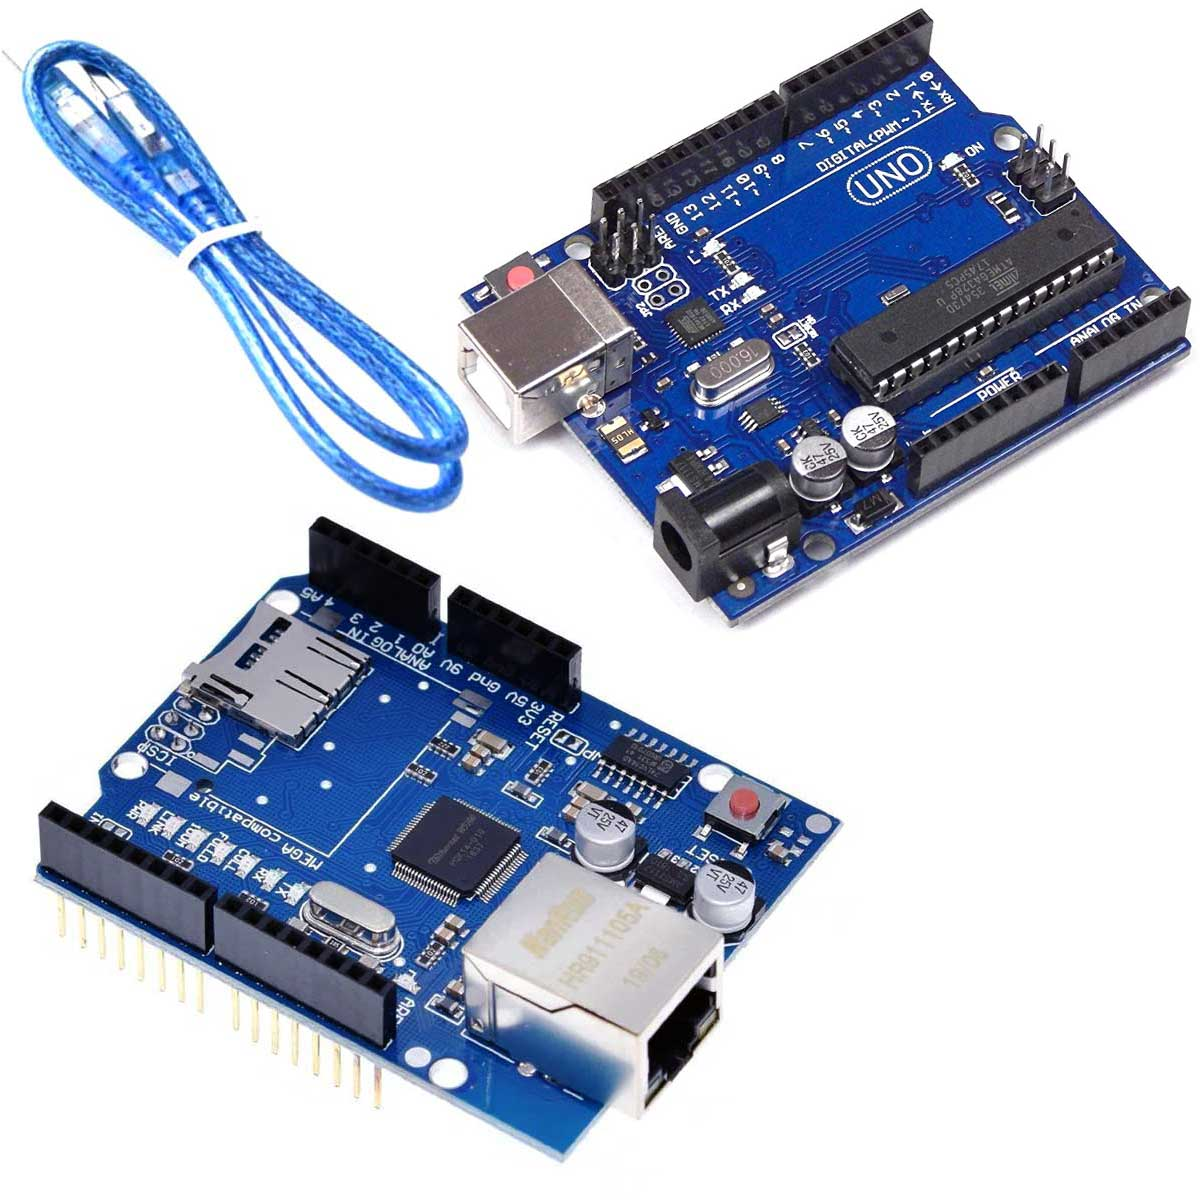 Kit Placa Uno R3 Atmega328 + Cabo + Shield Ethernet W5100